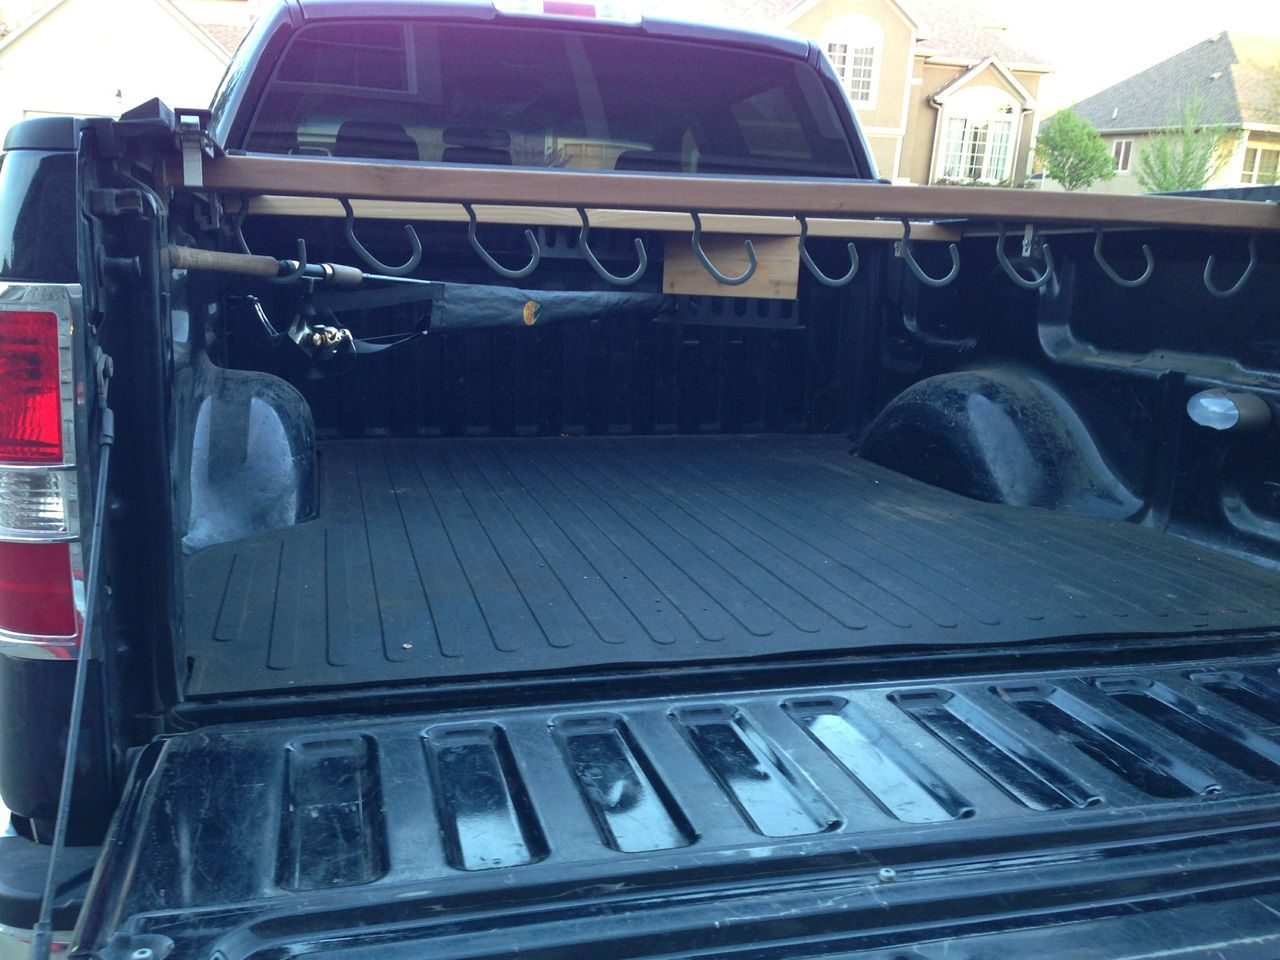 Diy fishing rod holder and pole rack for 5 foot truck bed truck pinterest fishing rods - Diy truck bed storage ...